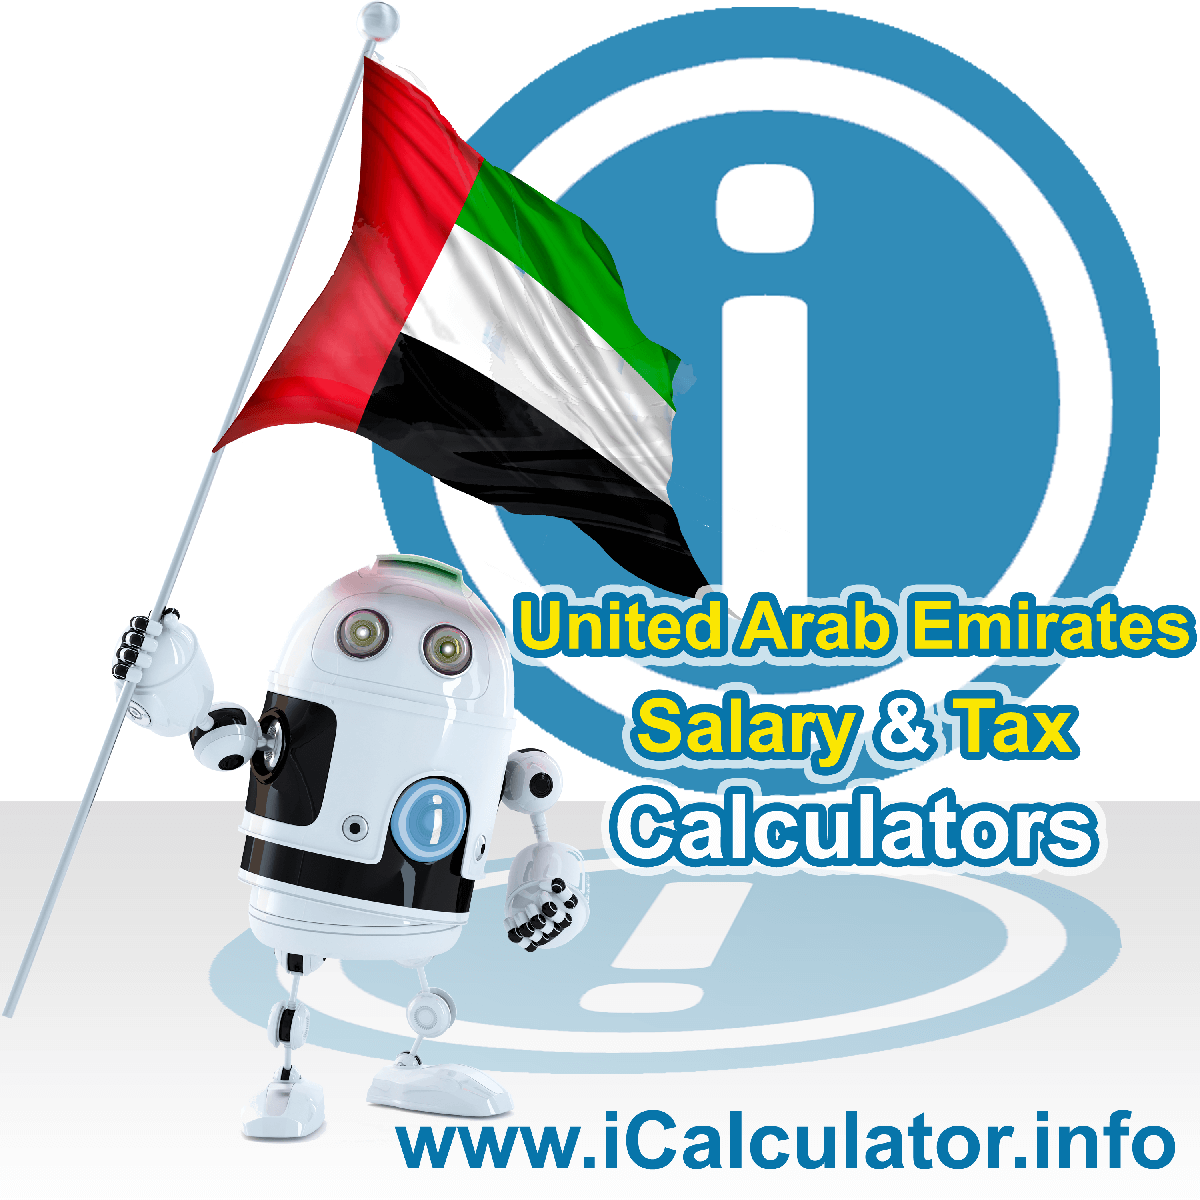 United Arab Emirates Tax Calculator. This image shows the United Arab Emirates flag and information relating to the tax formula for the United Arab Emirates Salary Calculator